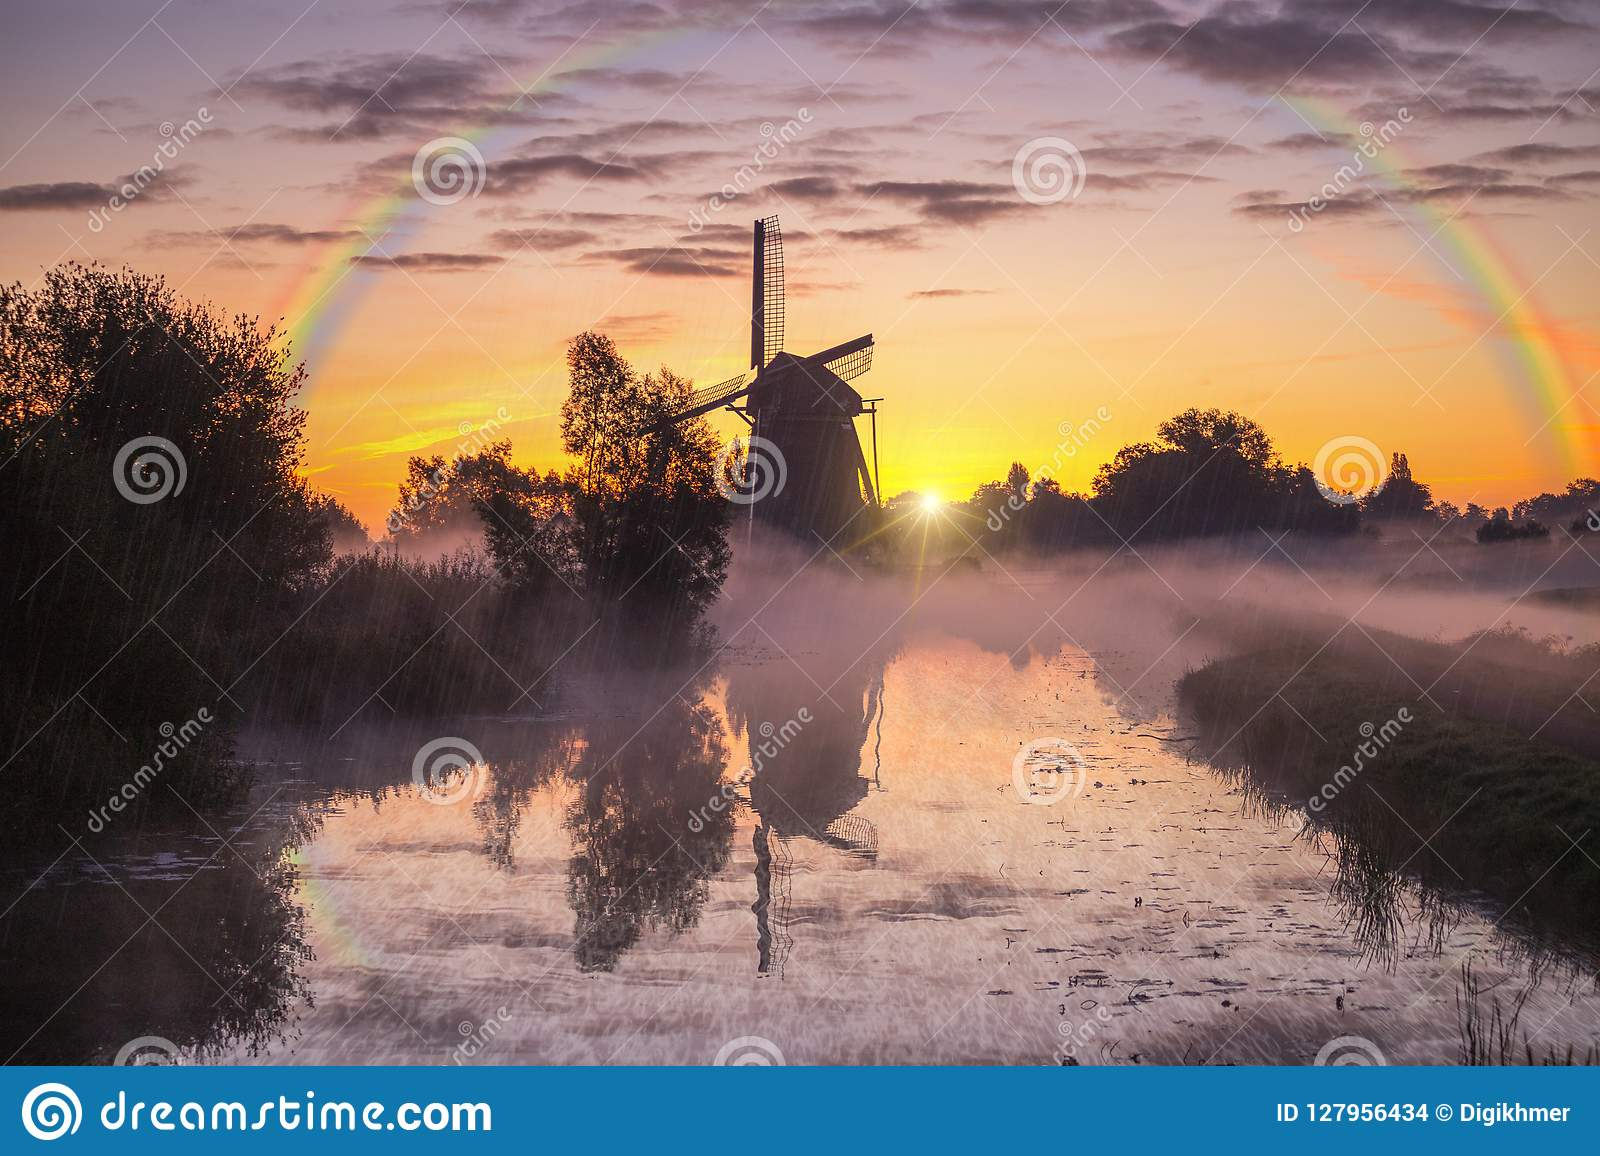 Misty and rainy windmill warm sunrise